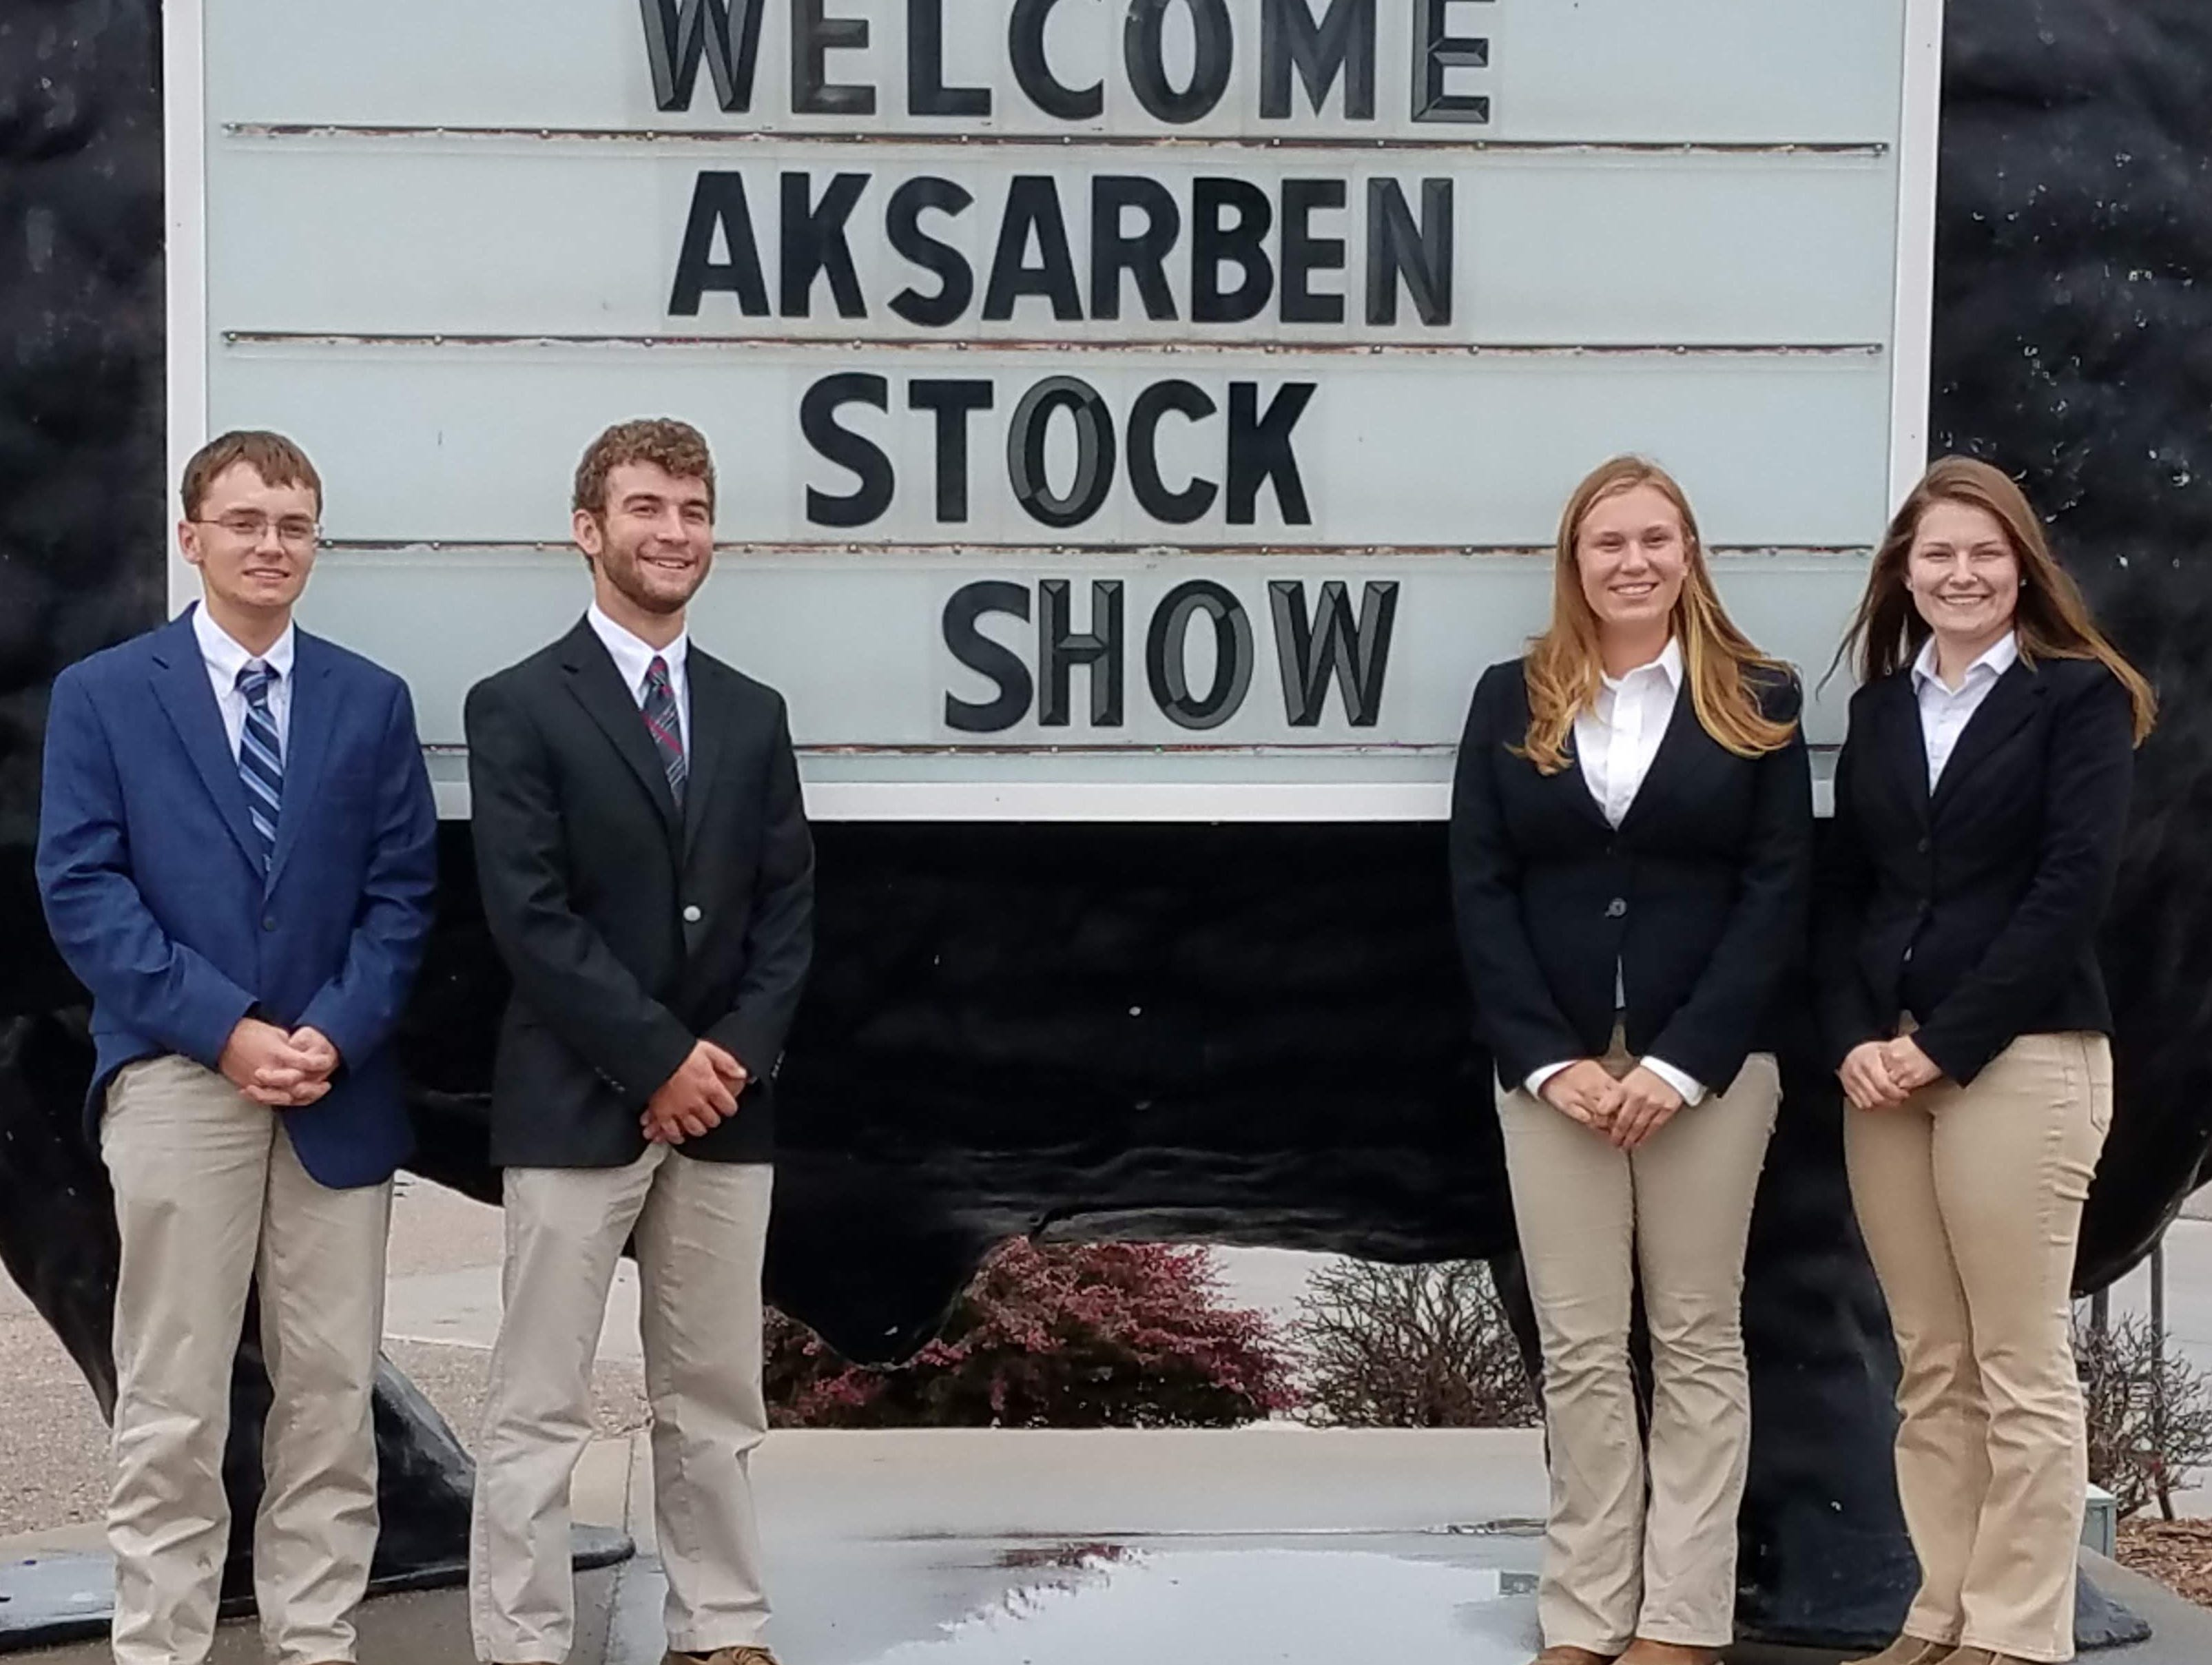 The Jefferson County placed 17th at the Aksarben Livestock Judging event in Nebraska. Team members are (from left) Trevor Messmer, Colton Klecker, Alexis Schultz, Danielle Chwala.  Klecker placed 21st overall in beef judging. The team is coached by Ed Bielinski.